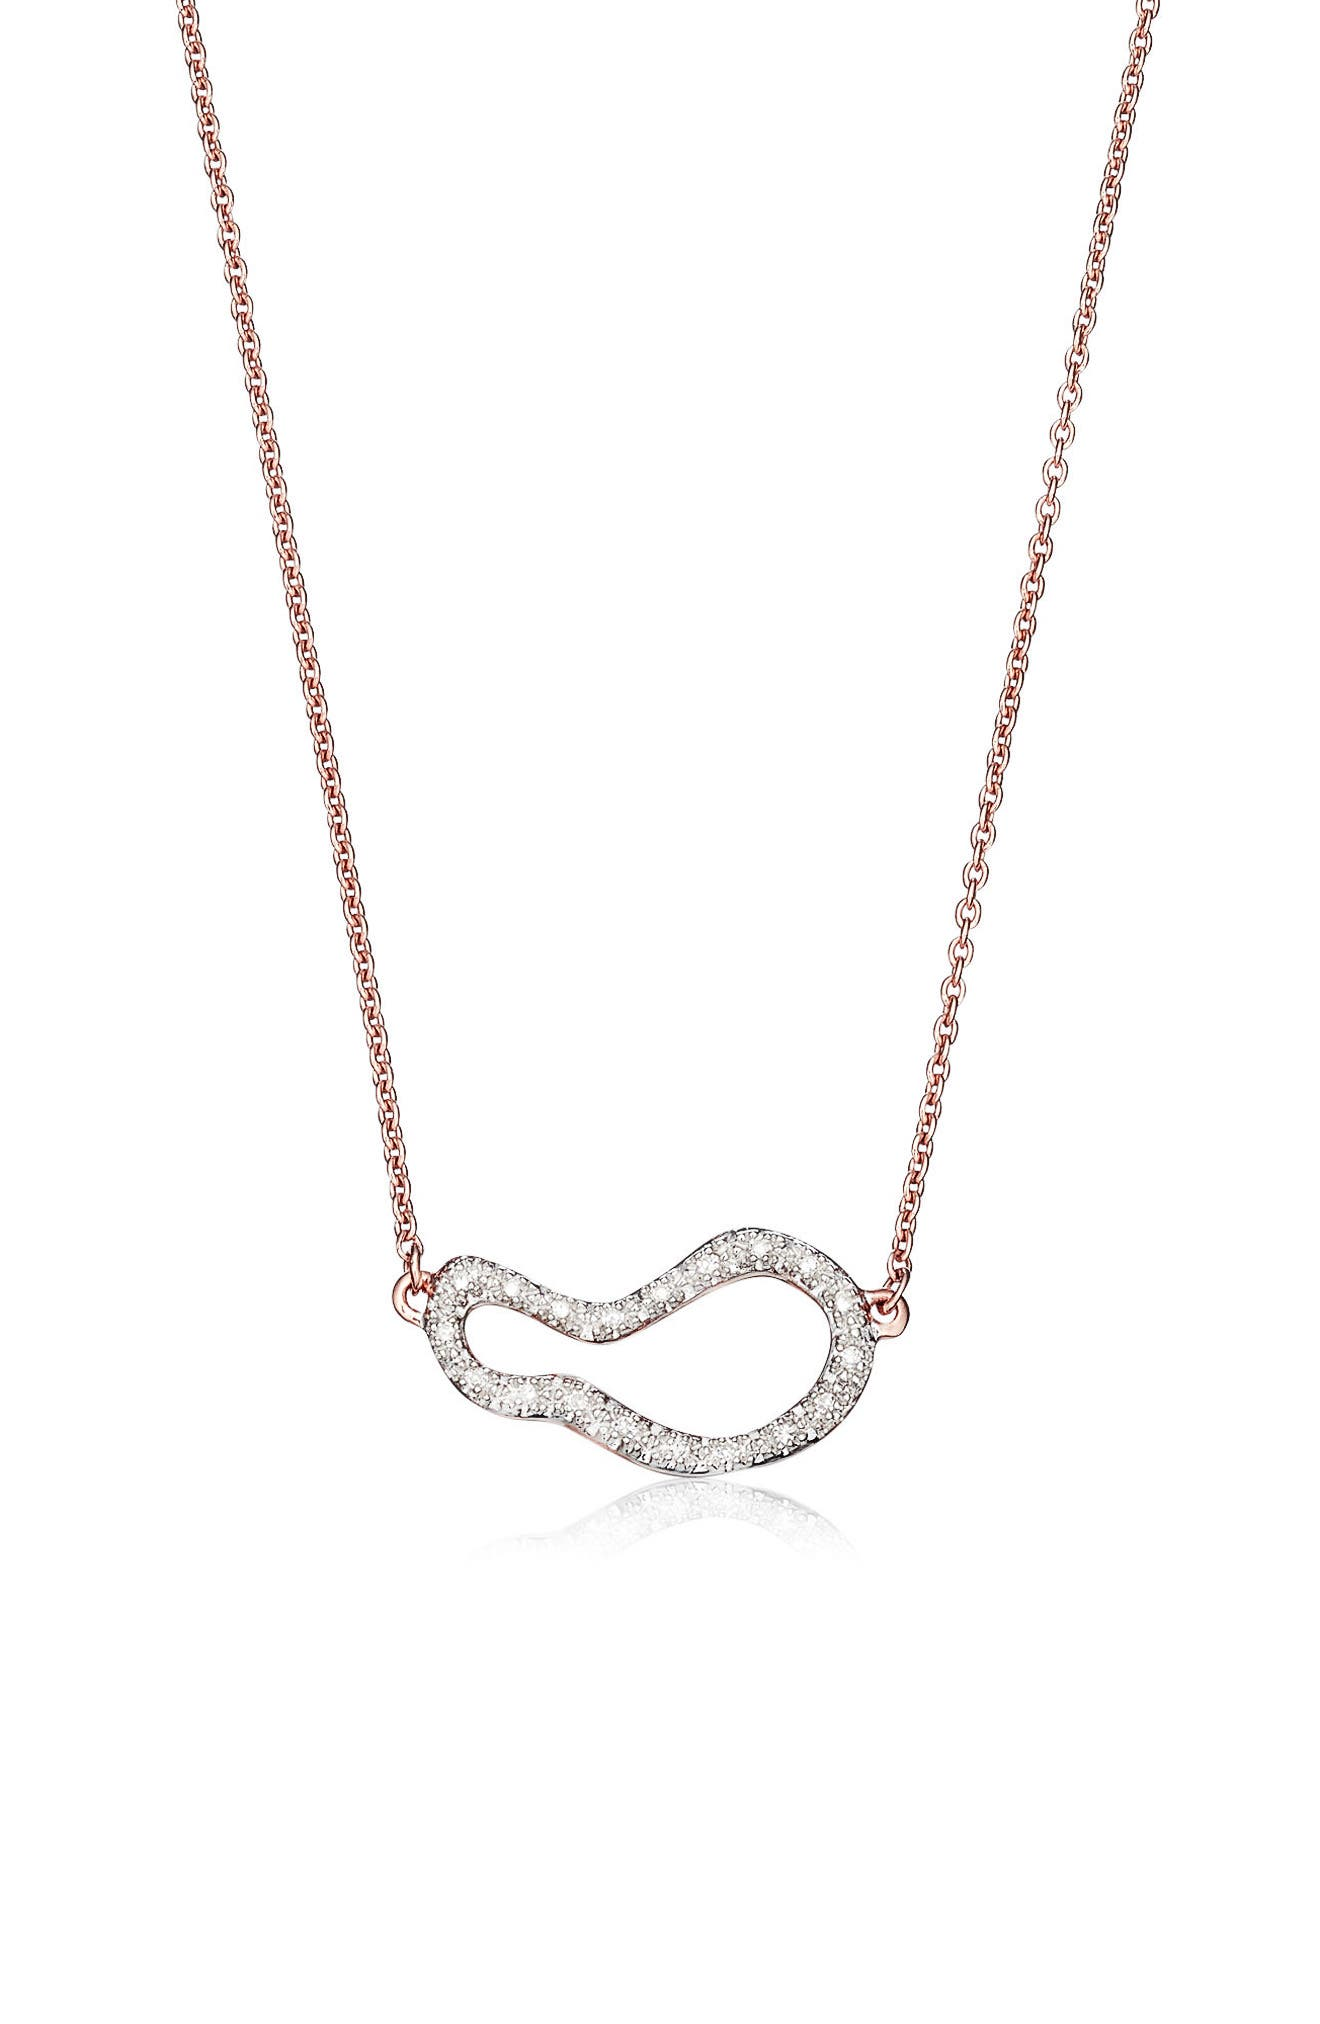 Riva Small Diamond Pendant Necklace,                             Main thumbnail 1, color,                             Rose Gold